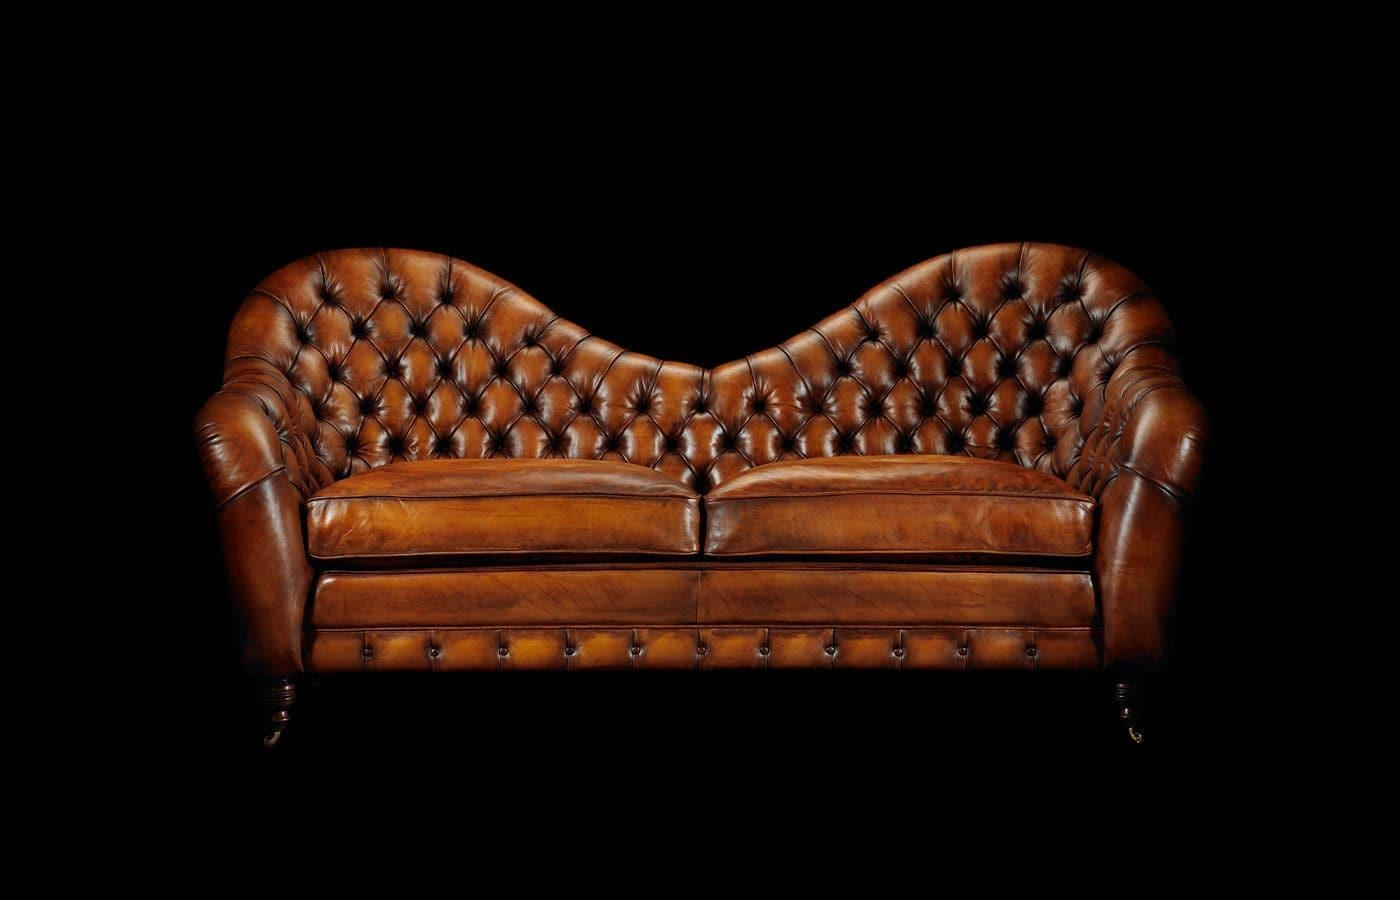 Chesterfield Sofa / Leather / 2 Seater / On Casters – Francis Regarding Casters Sofas (Image 4 of 20)